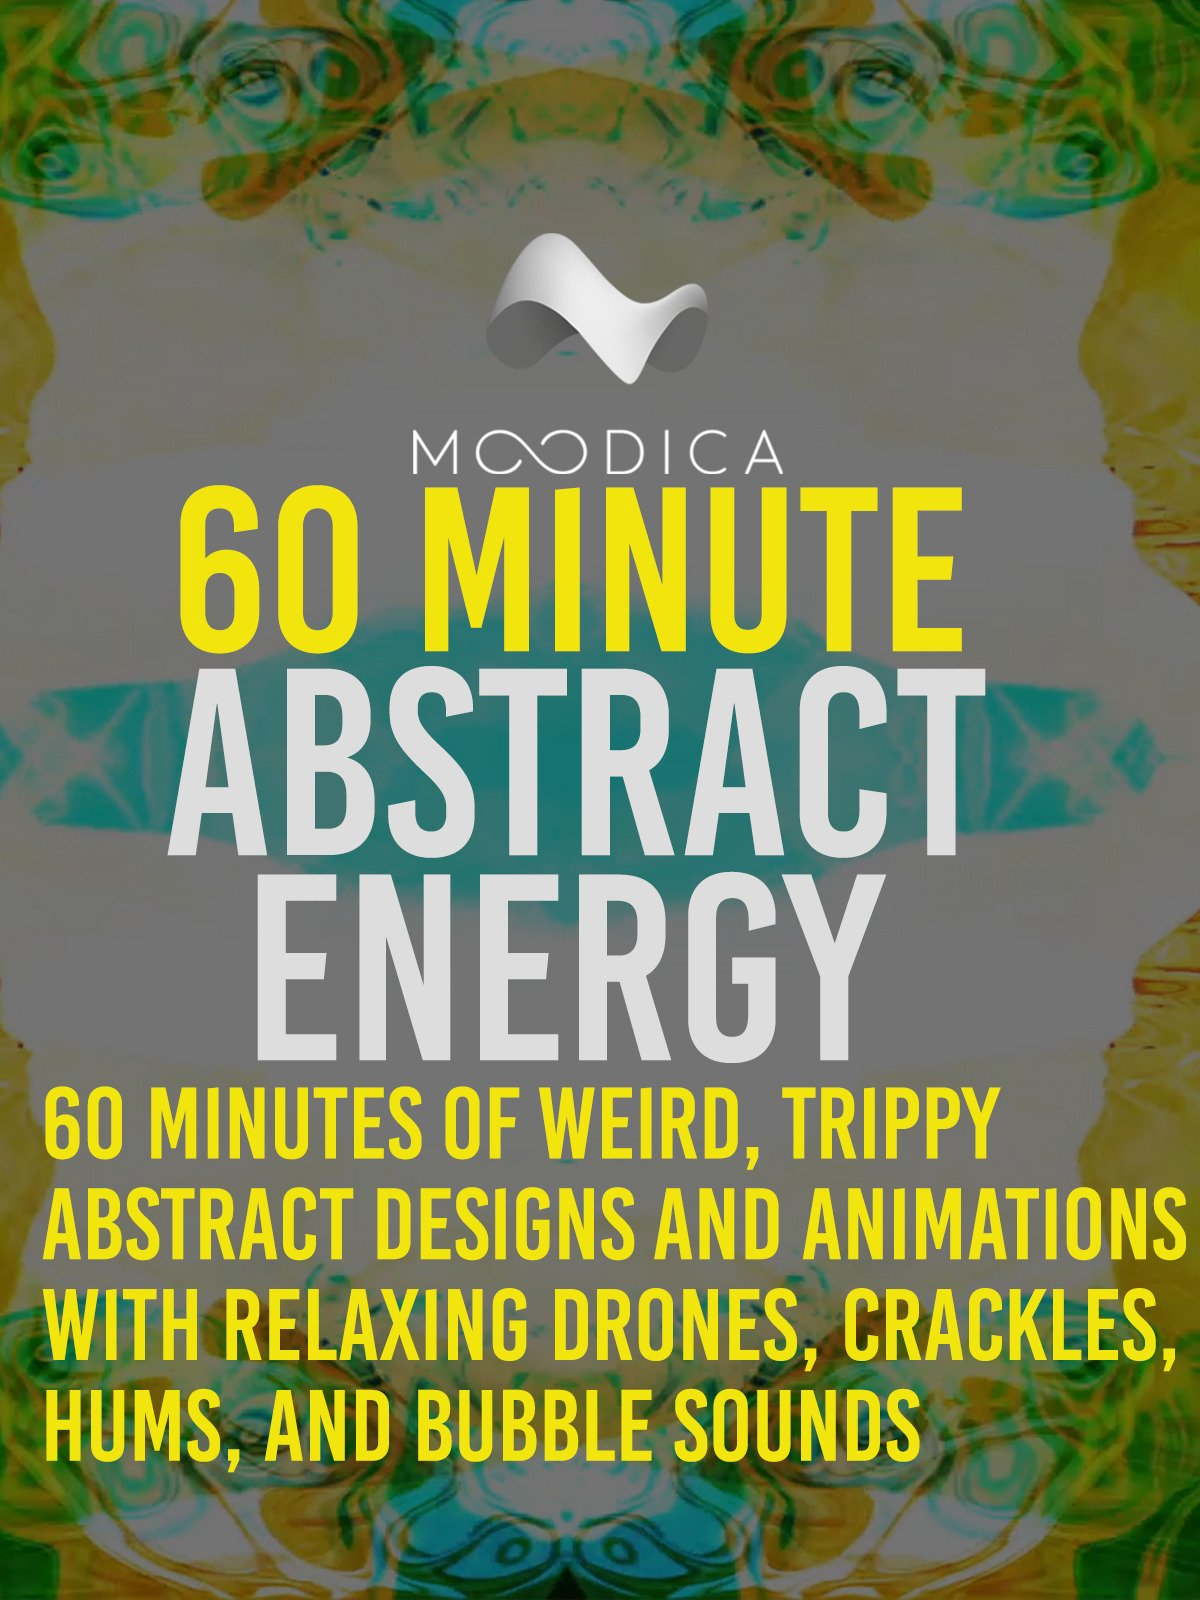 60 Minute Abstract Energy: Weird, Trippy Abstract Designs and Animations With Relaxing Drones, Crackles, Hums, and Bubble Sounds